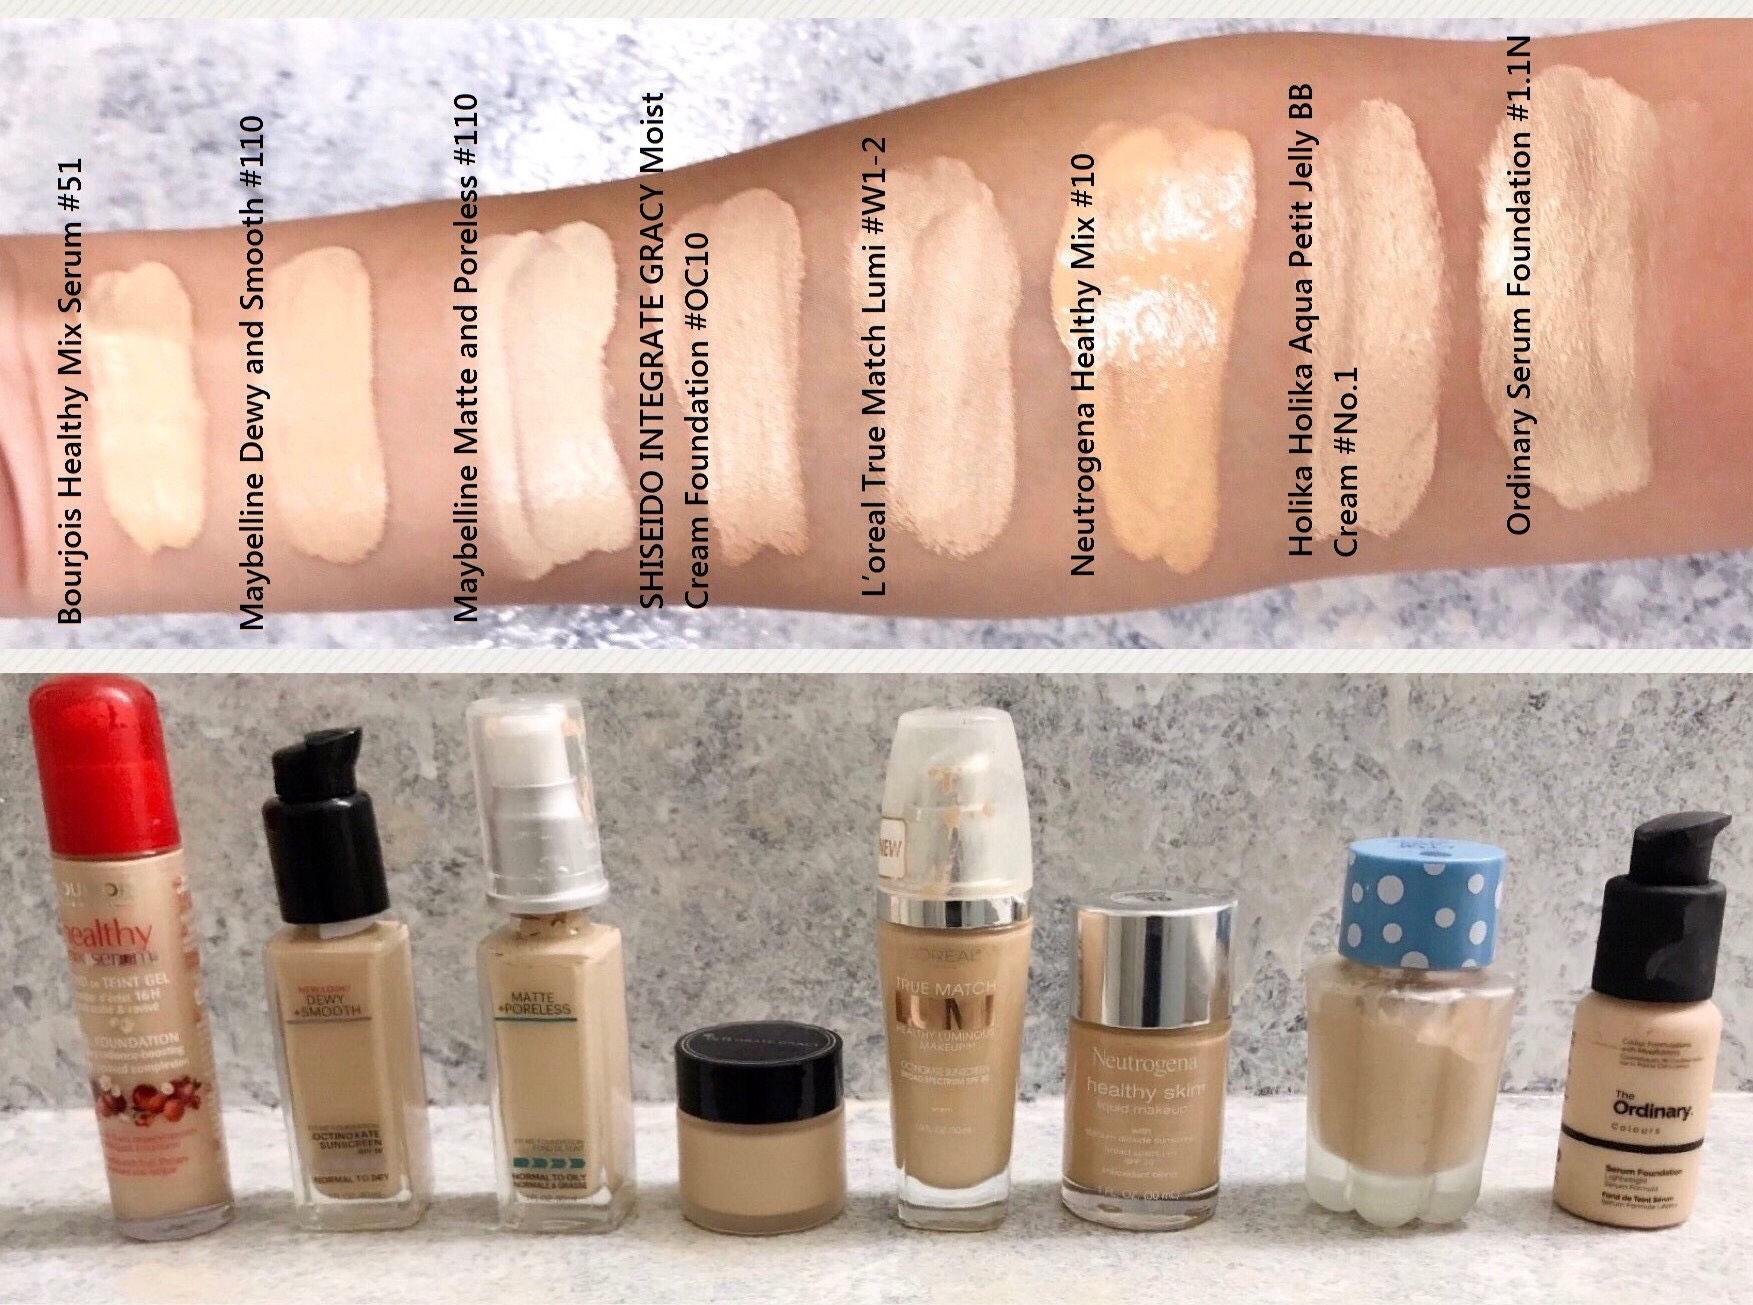 Pale Foundation Mega Swatch Review And Comparison Light To Medium Maybelline Super Bb Cushion Sand Beige Coverage Drugstore Part 1